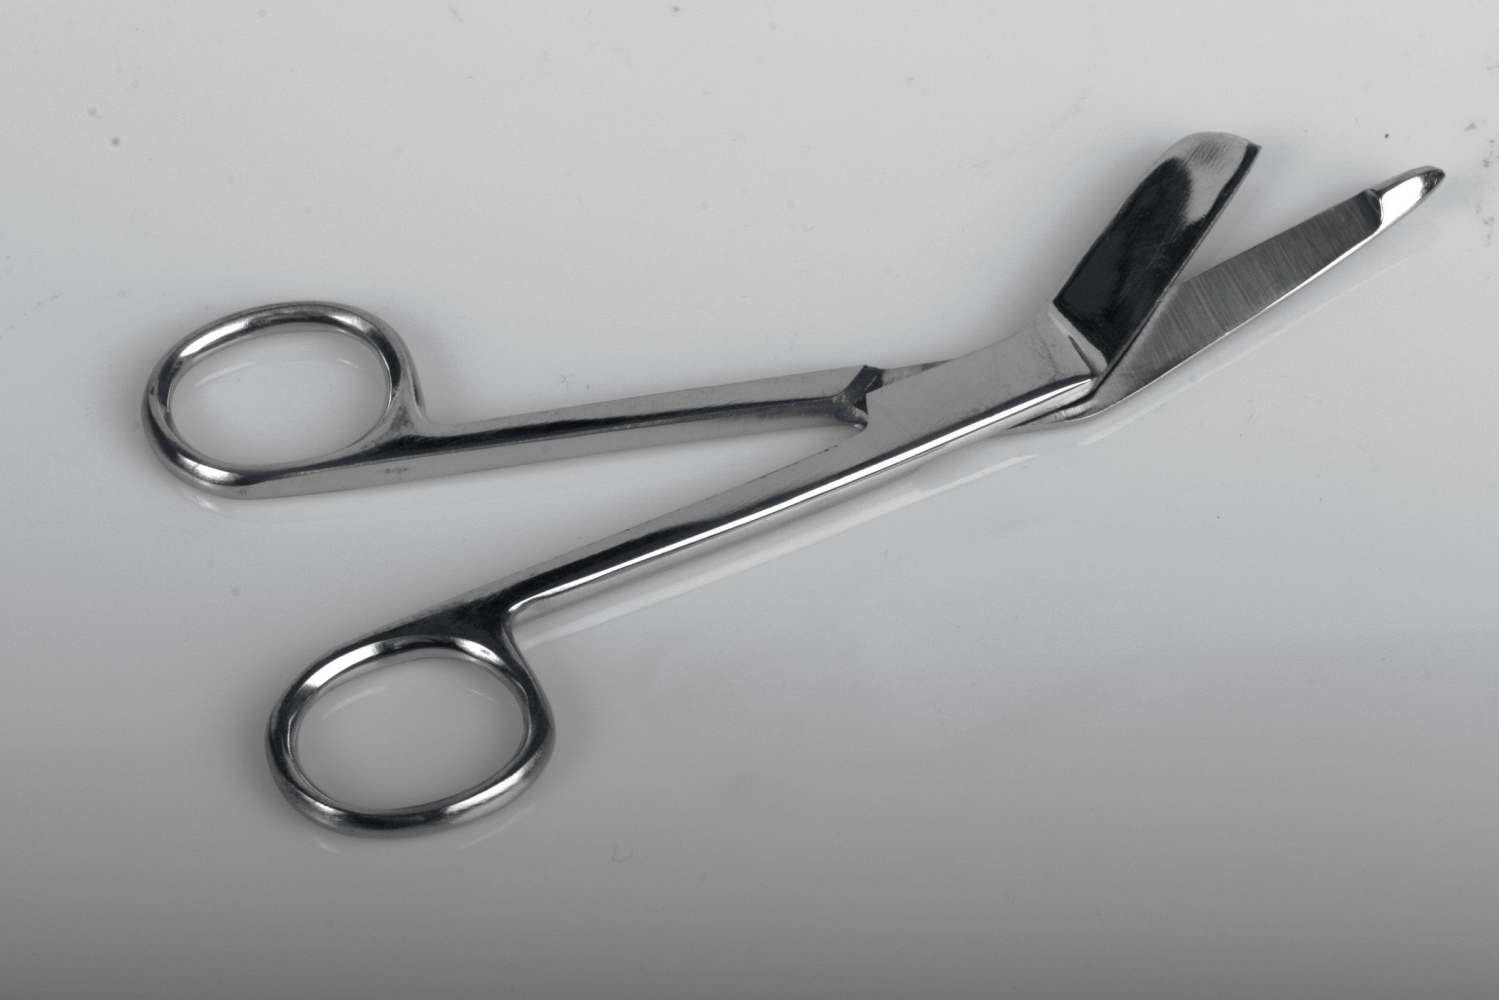 Medline Lister Bandage Scissor - 7.25